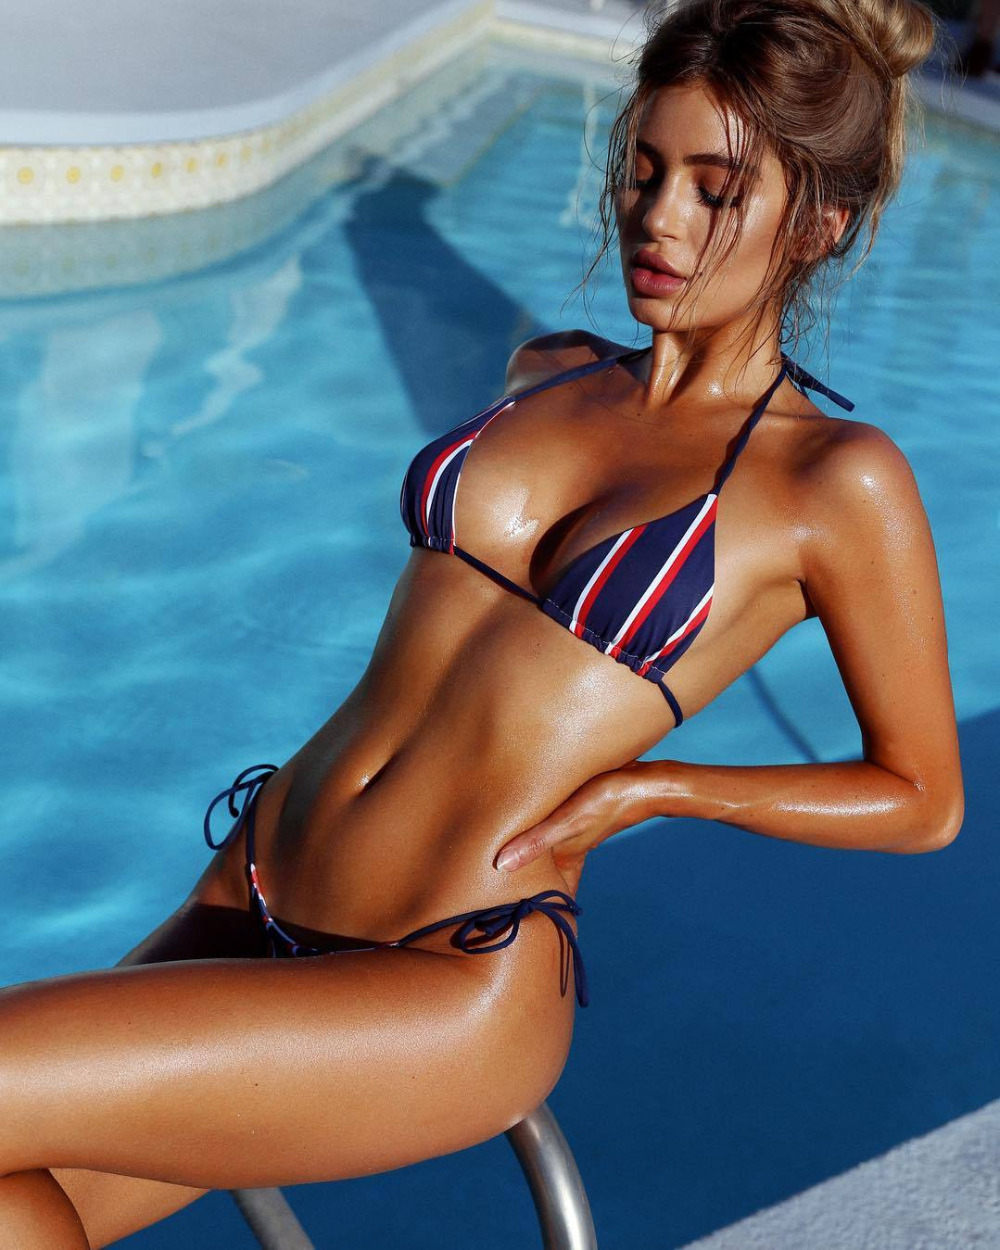 Hirigin Striped Women Swimsuits Women Bandage Push Up Paded Imbottito Reggiseno Bikini Set Hot Bathing Suit Beach Swimwear